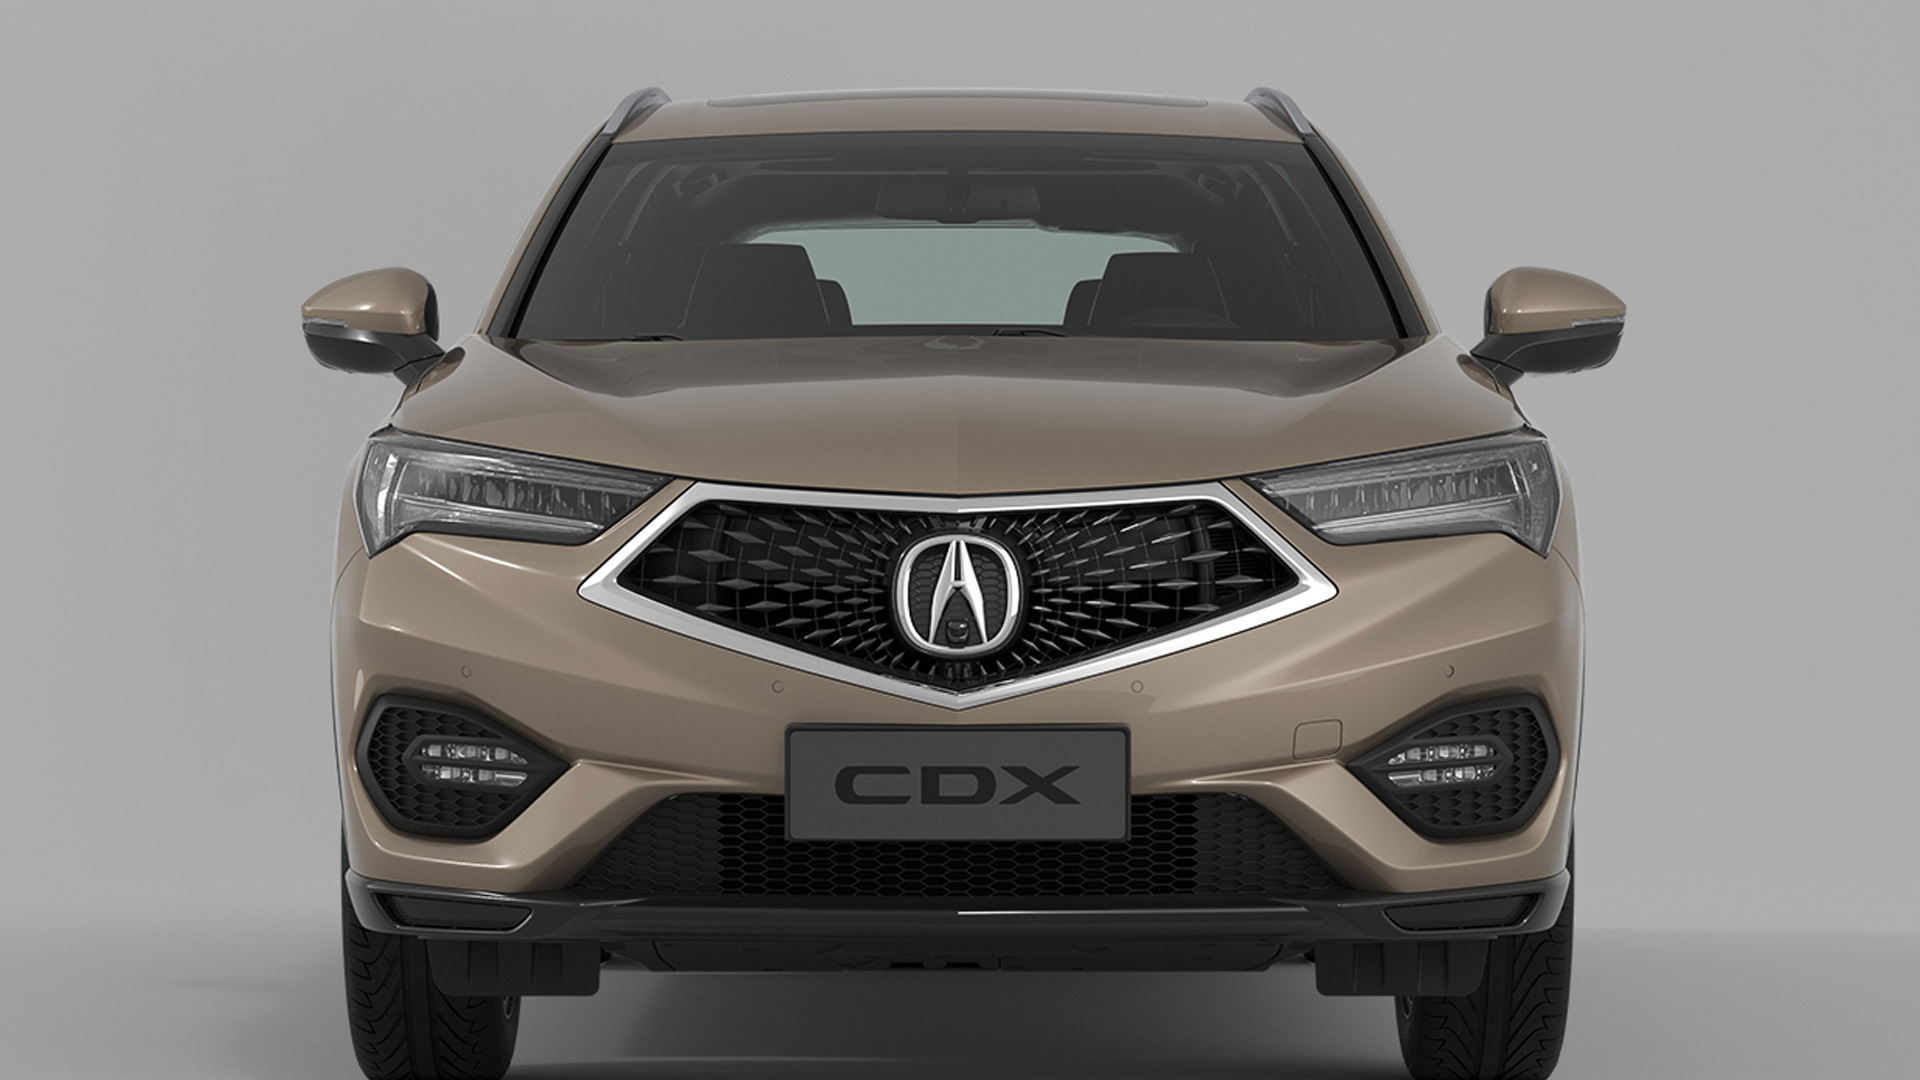 2016 Acura CDX (Chinese spec)